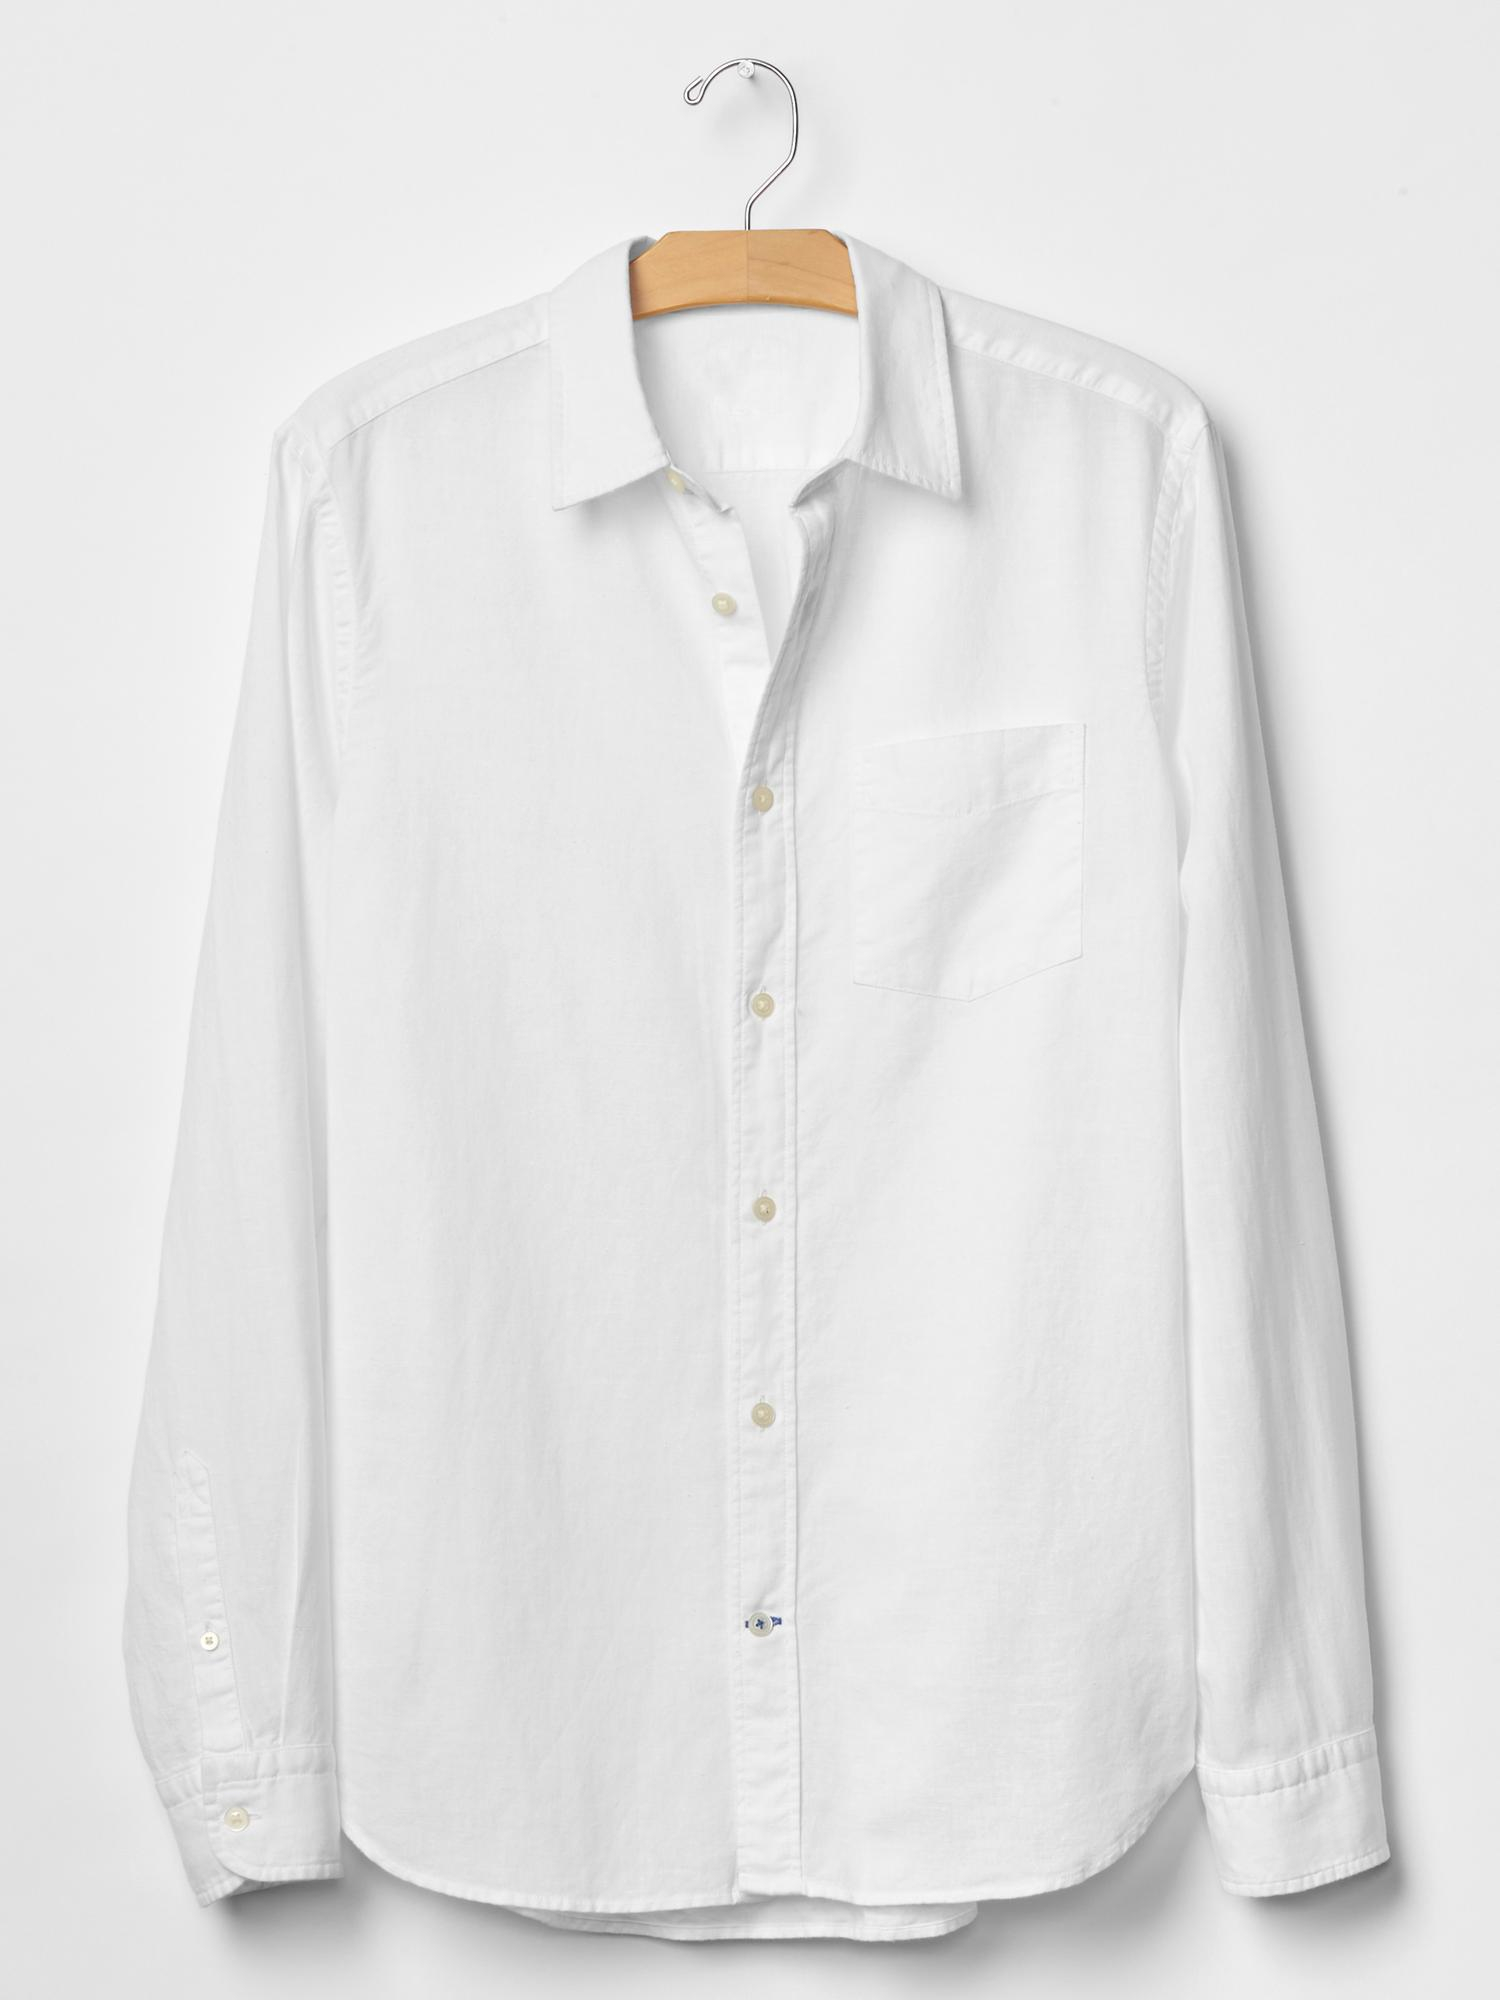 Gap Linen Cotton Solid Shirt In White For Men Optic White